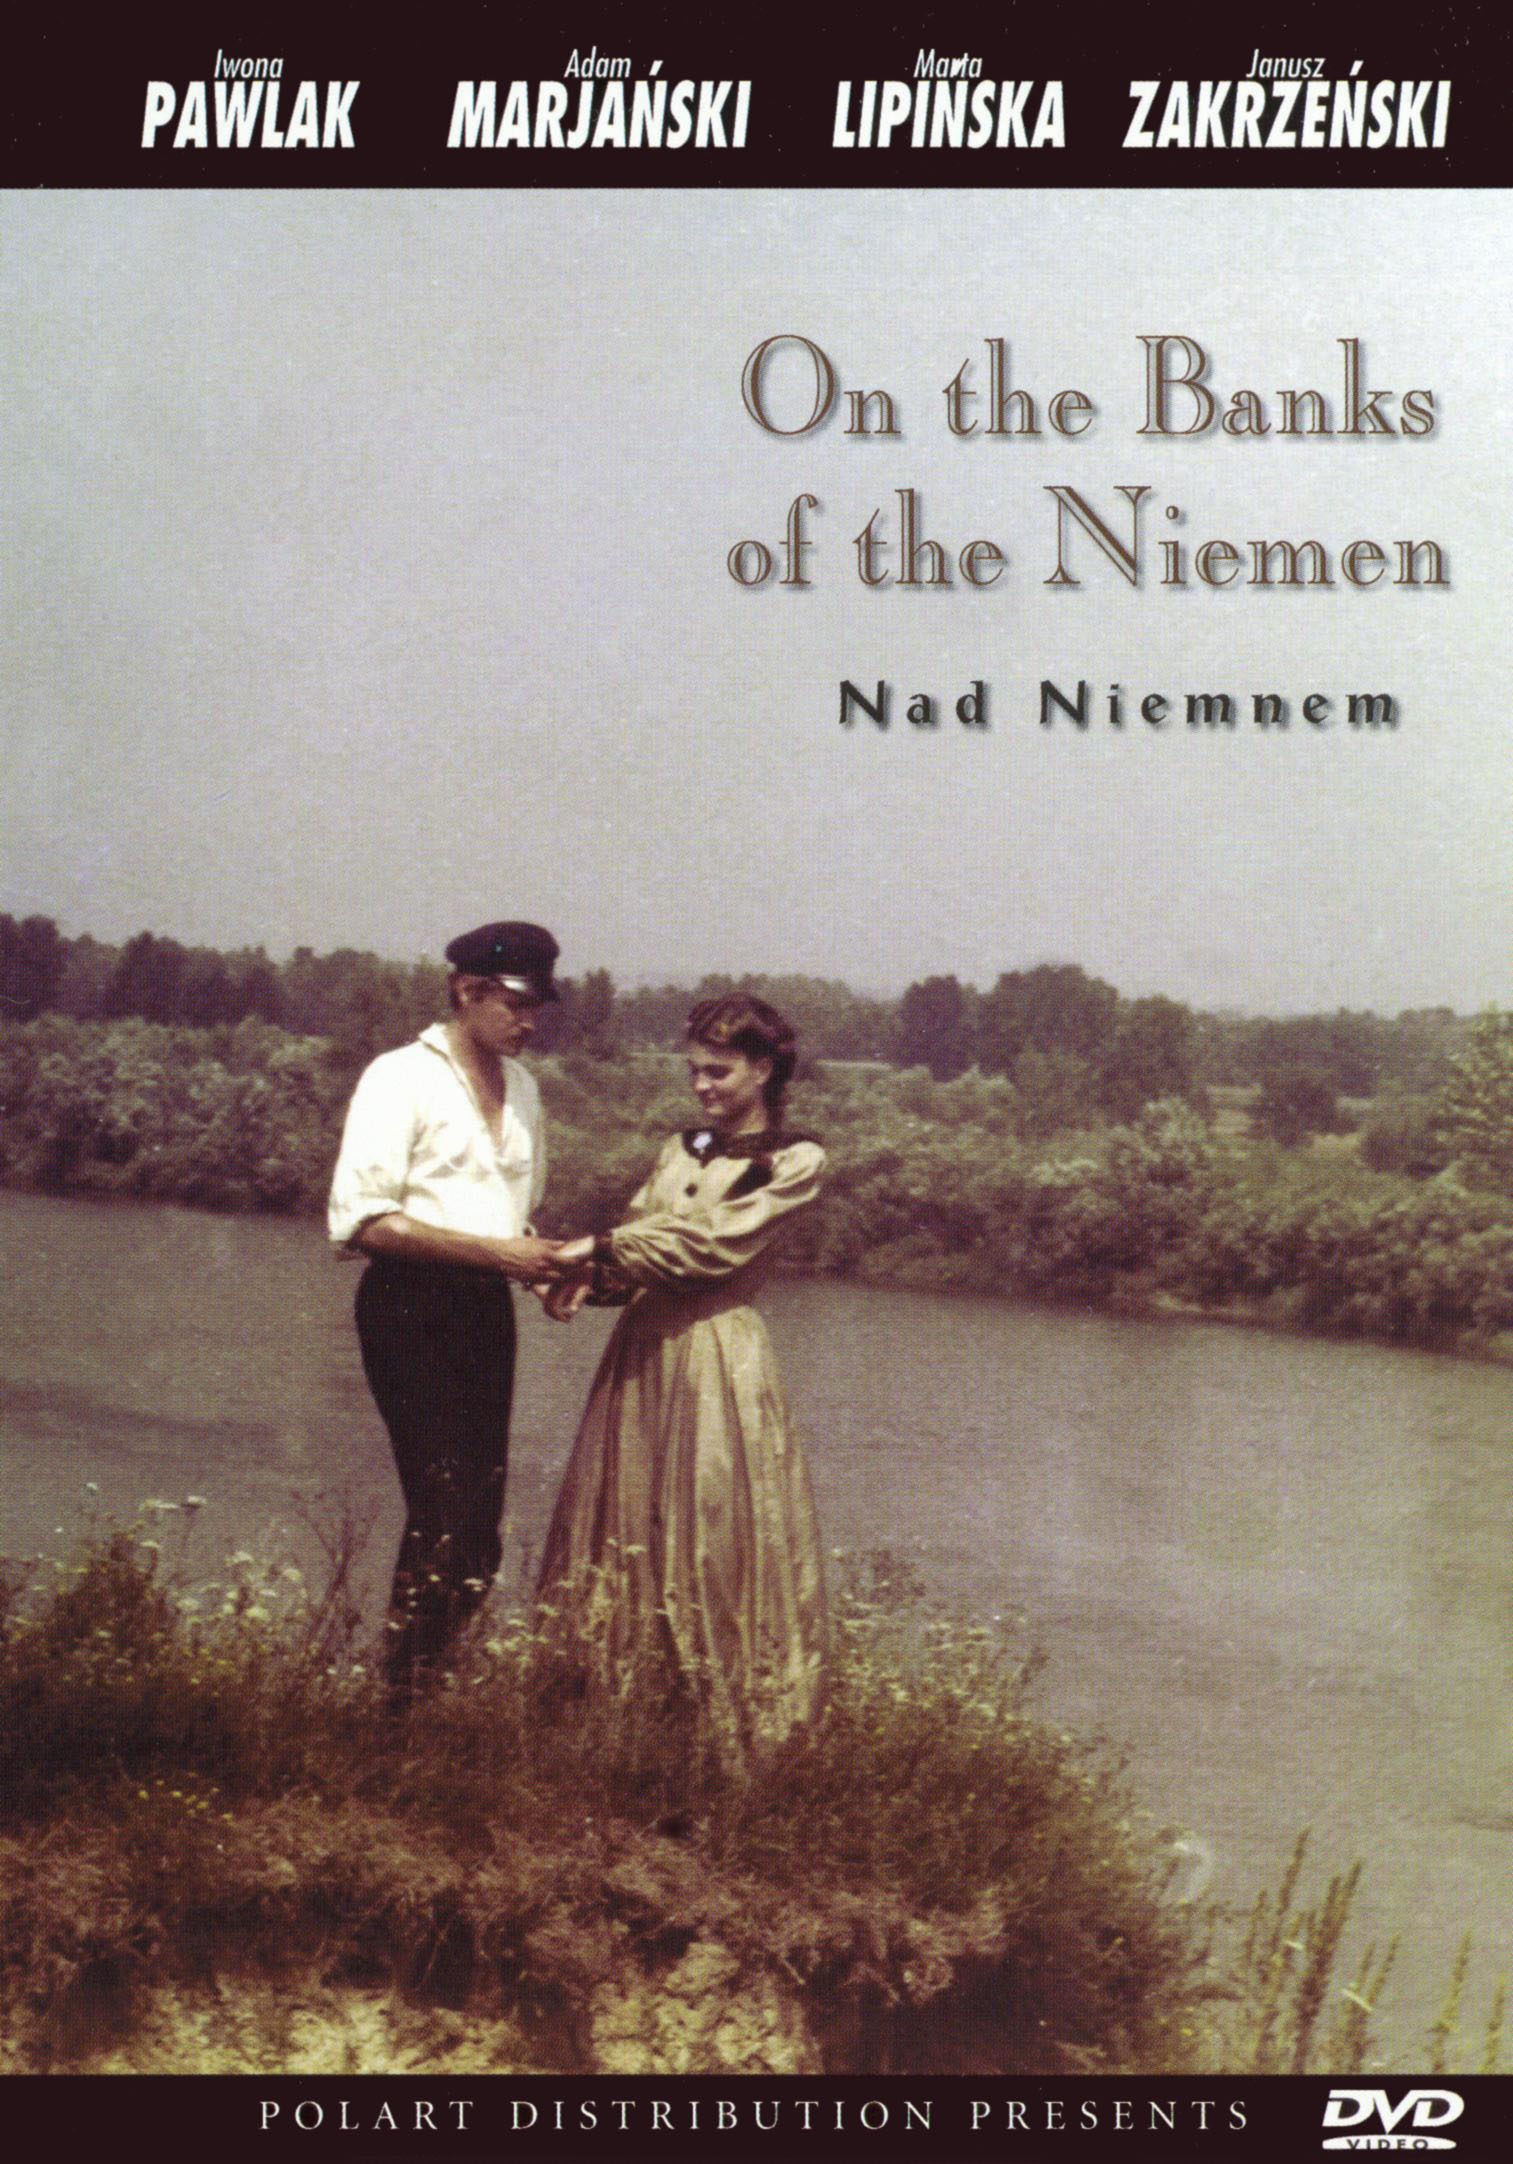 On the Banks of the River Niemen